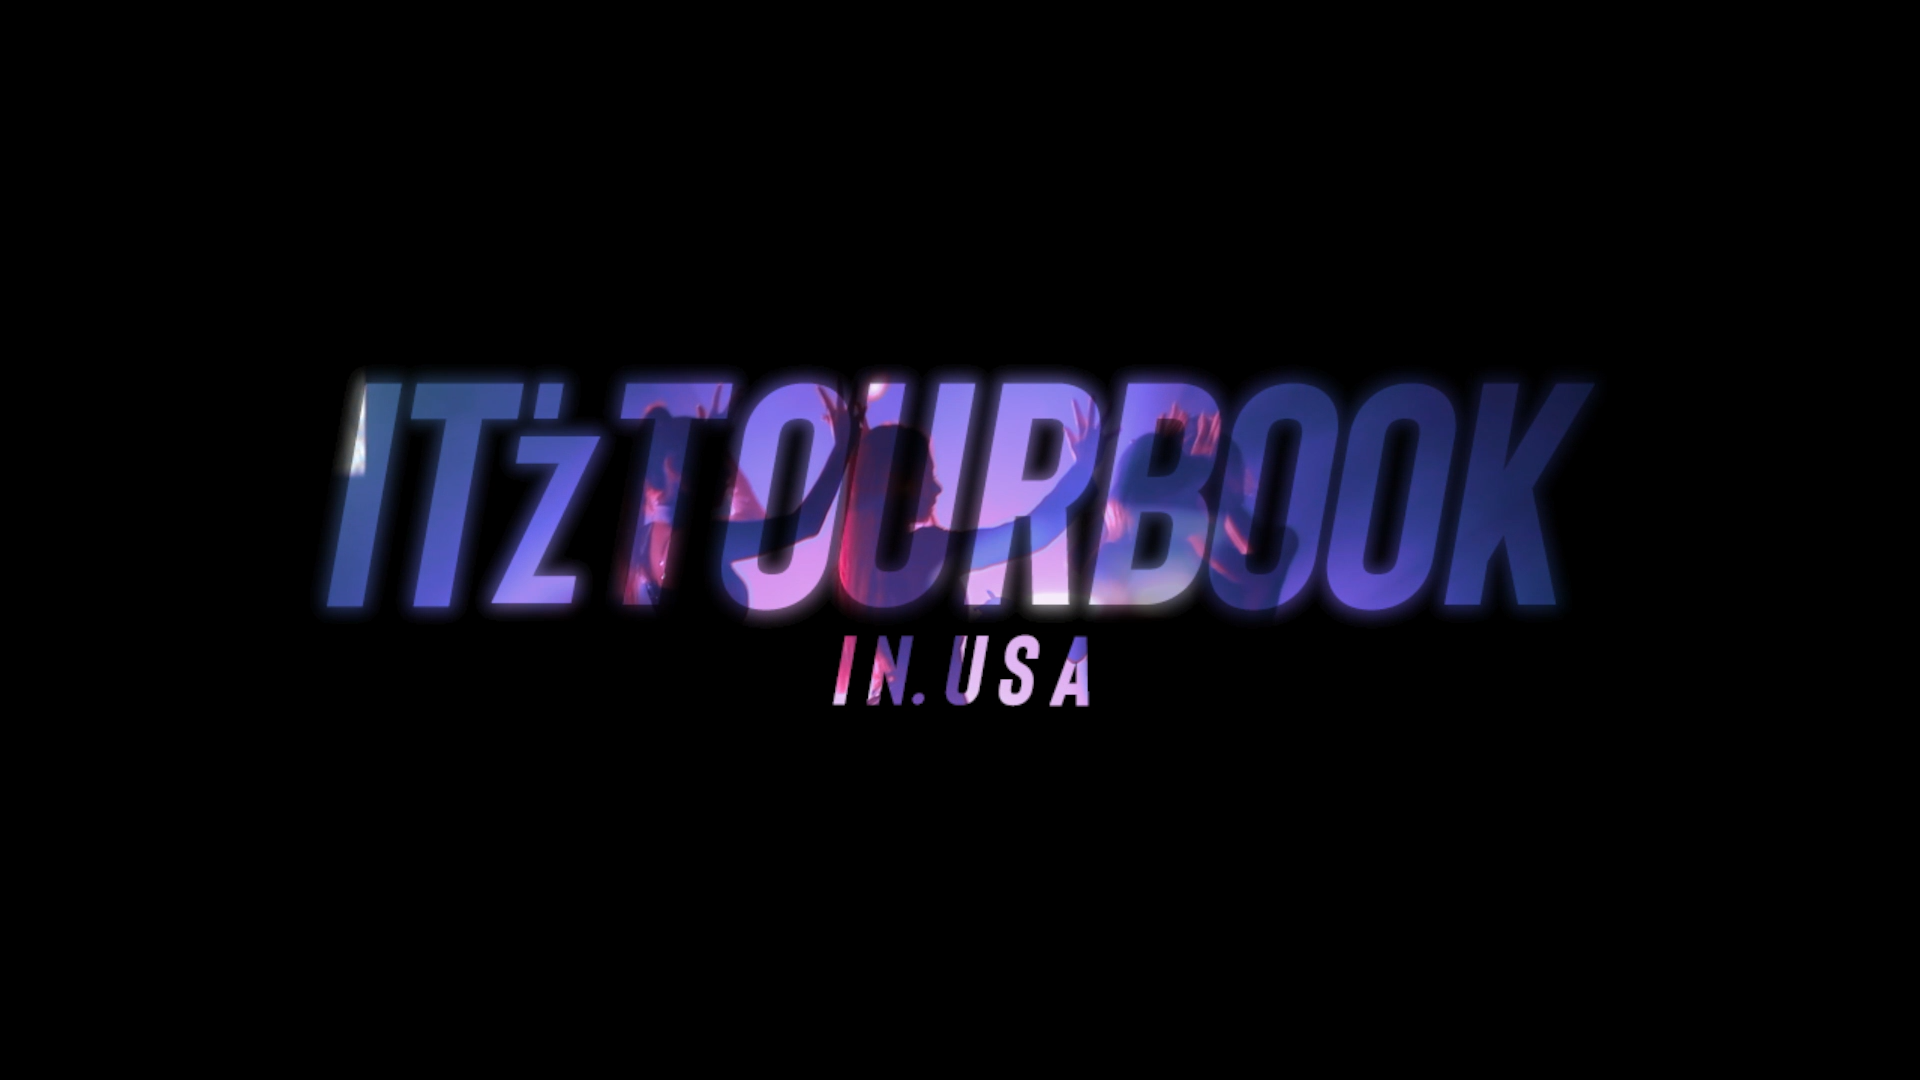 ITZY IT'z TOURBOOK in USA TEASER